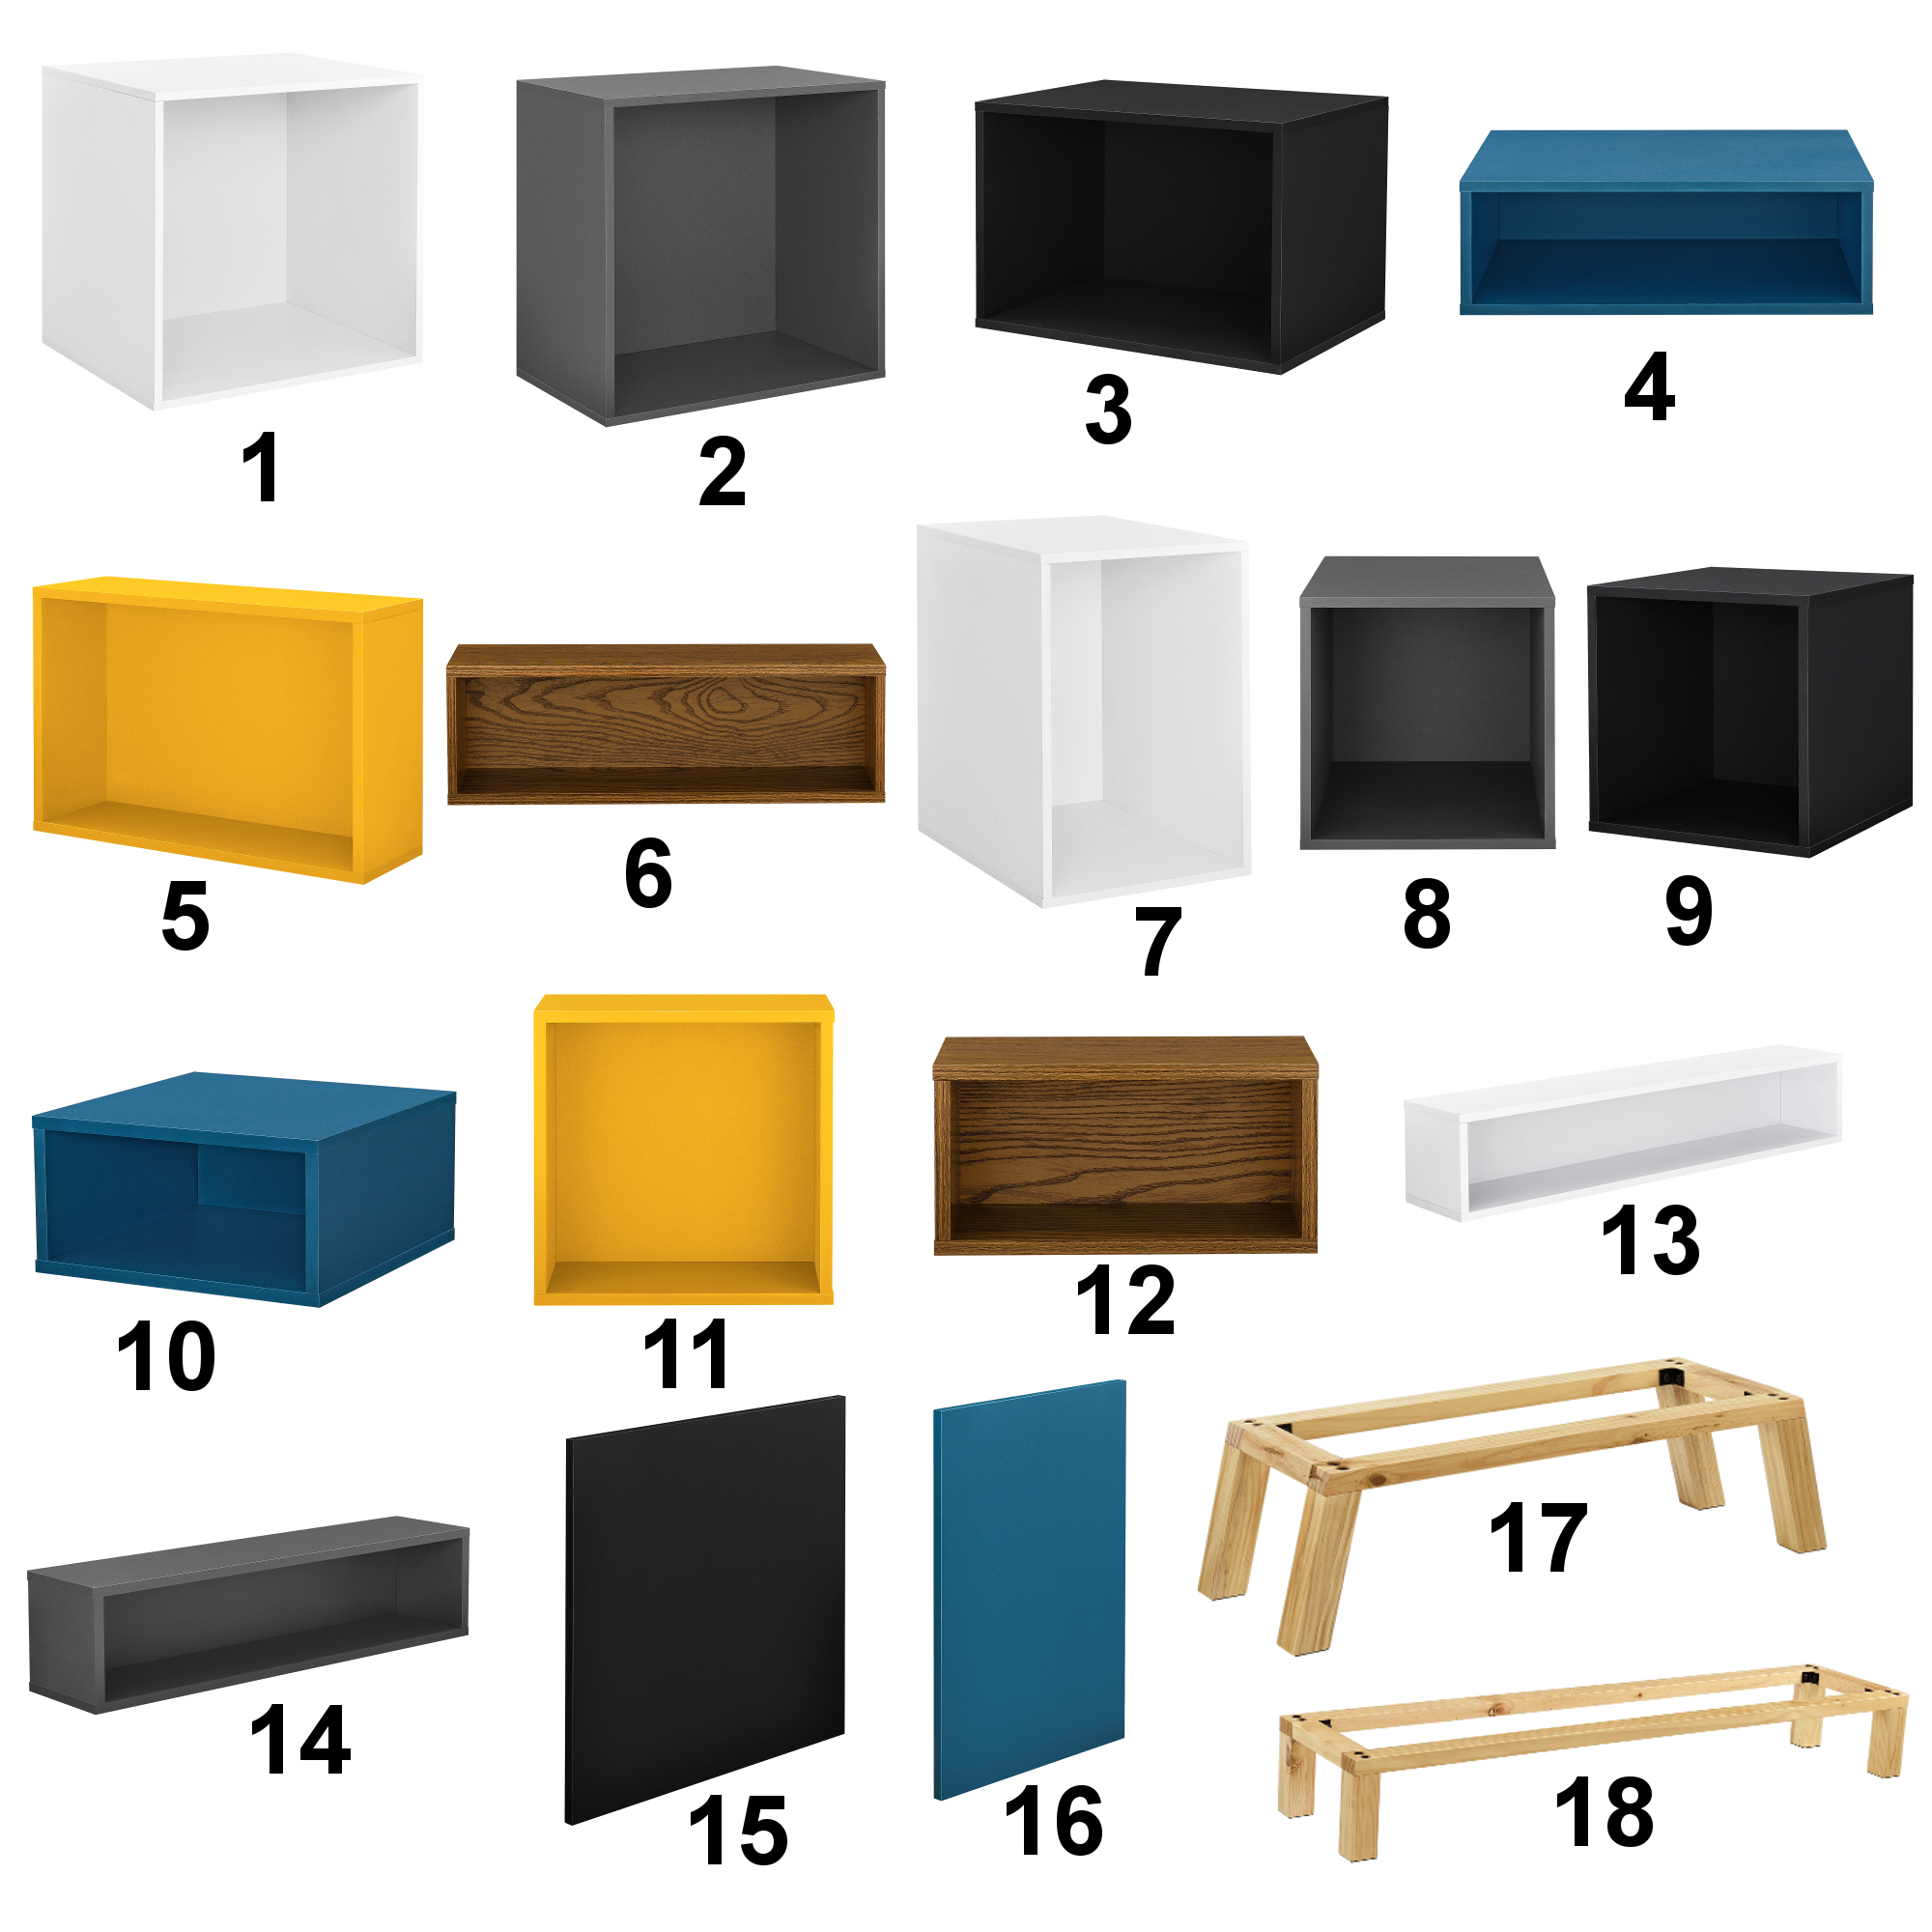 elements regal kommode wandregal h ngeregal schrank wandschrank ebay. Black Bedroom Furniture Sets. Home Design Ideas